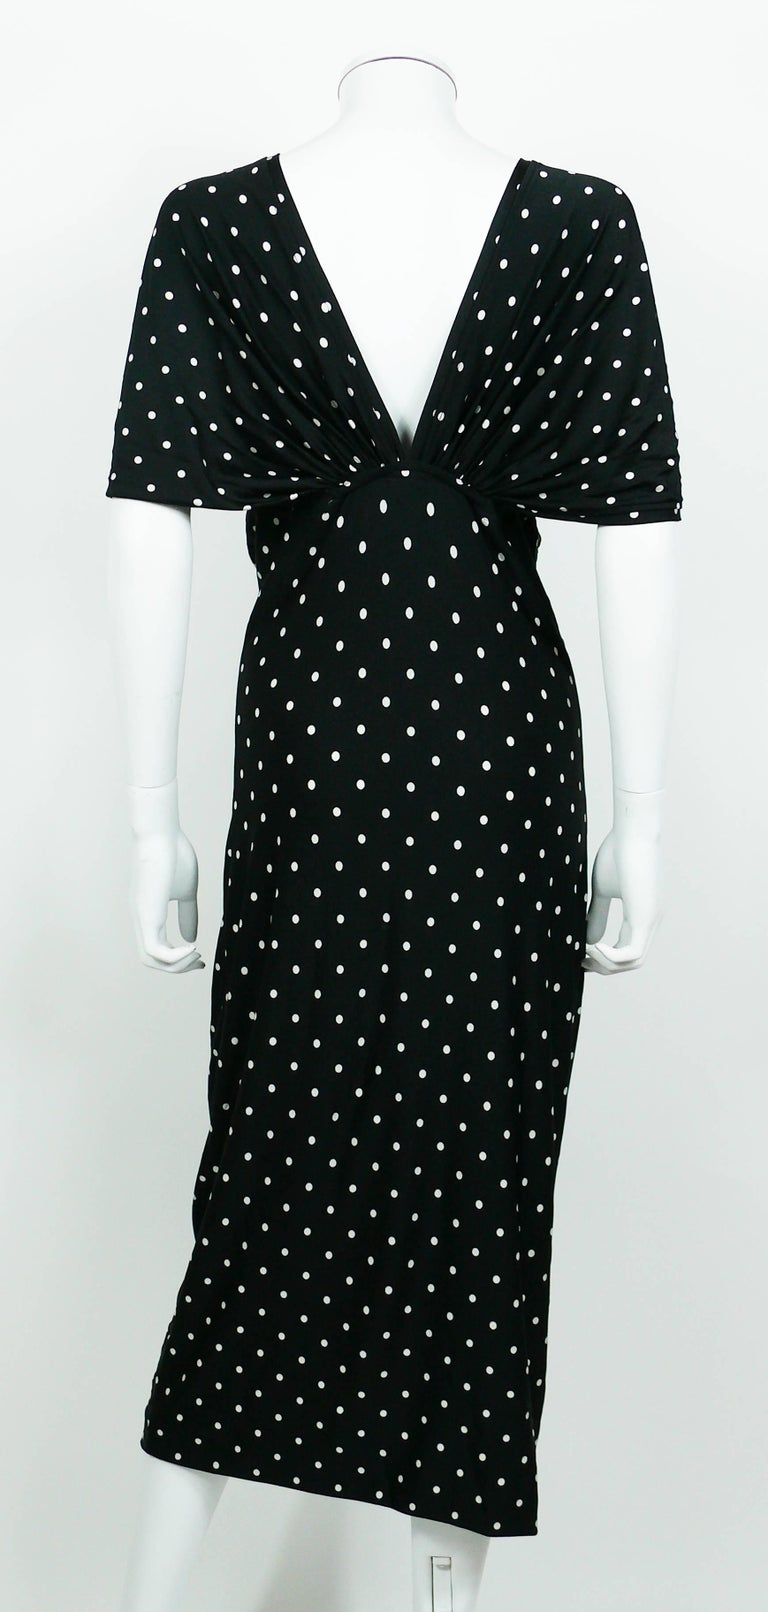 Patrick Kelly Vintage Black White Polka Dot Dress US Size 10 For Sale 5